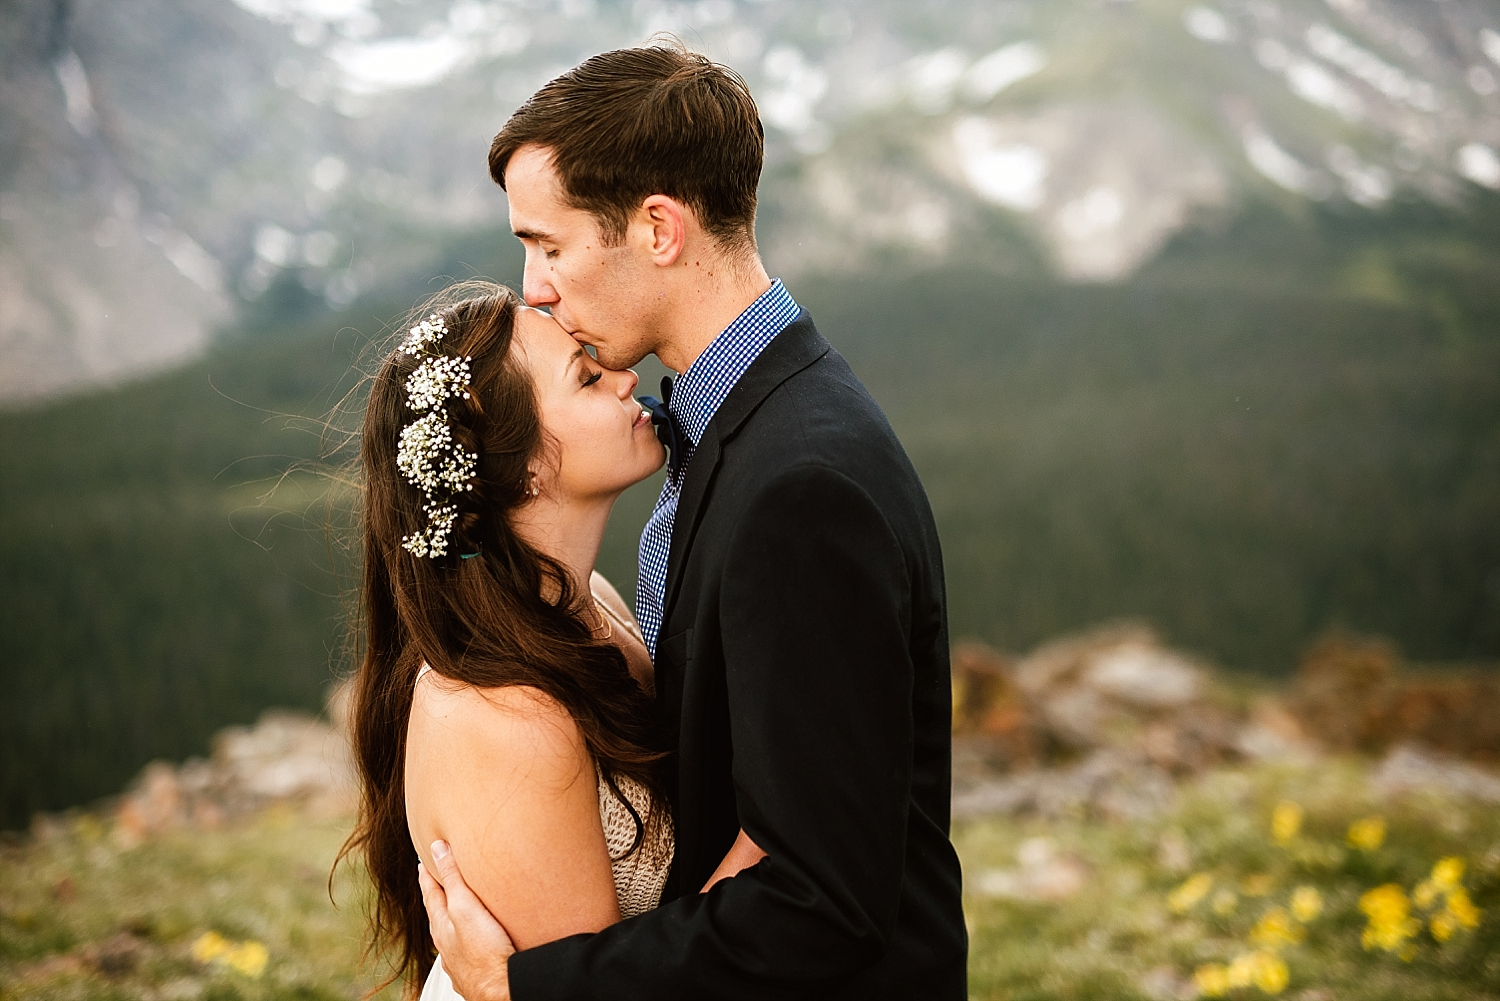 I love this Baby's Breath flower crown Jessica wore in her hair on her wedding day! Such a great wedding hairstyle for long hair like mine! | Mountain elopement photos by adventure wedding photographer, Maddie Mae.